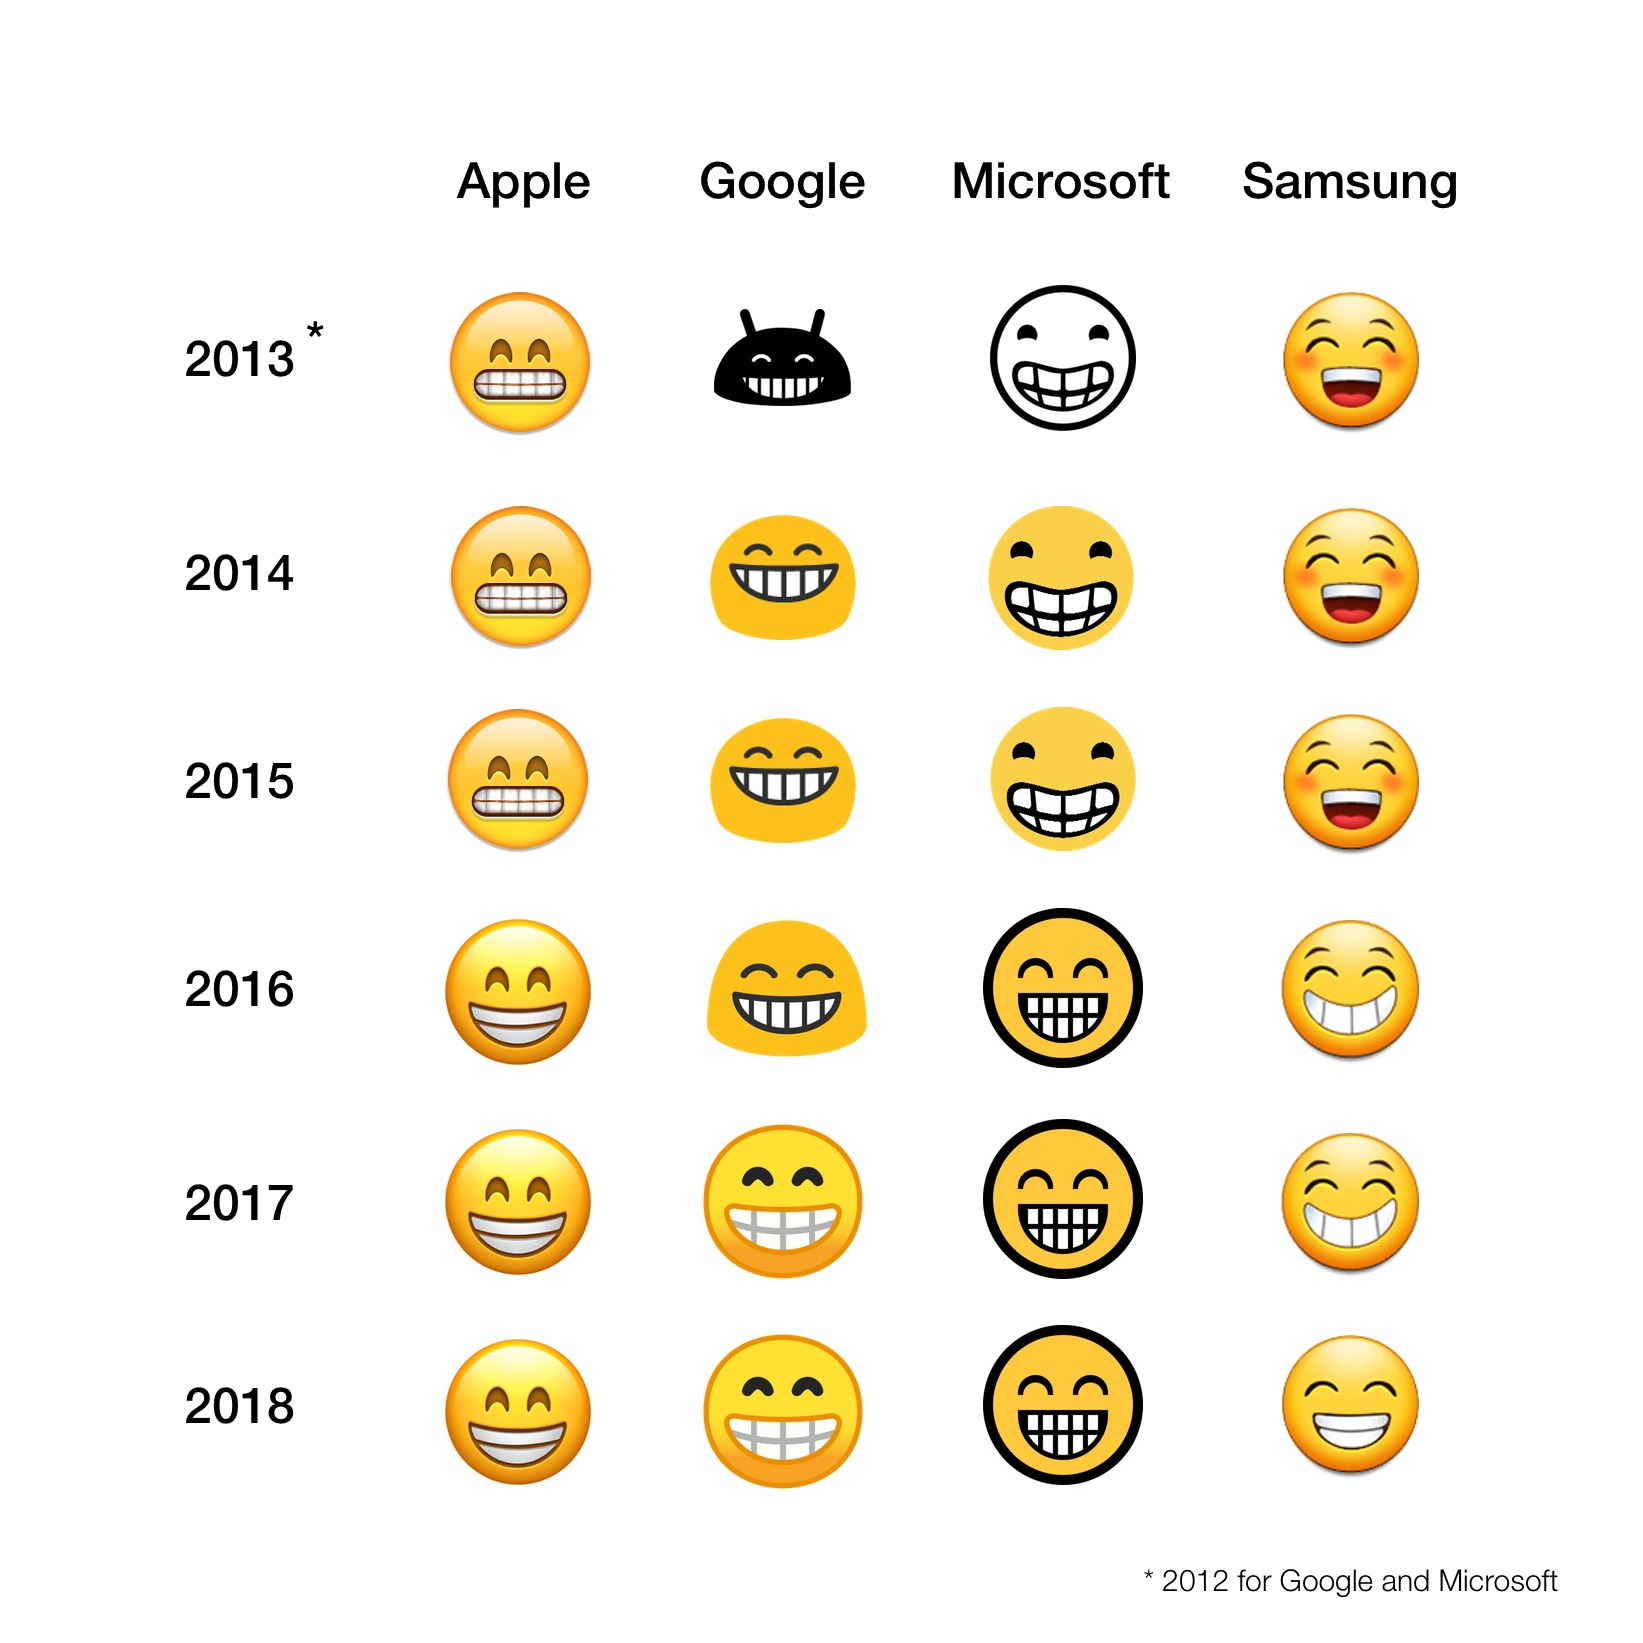 2018: The Year of Emoji Convergence?